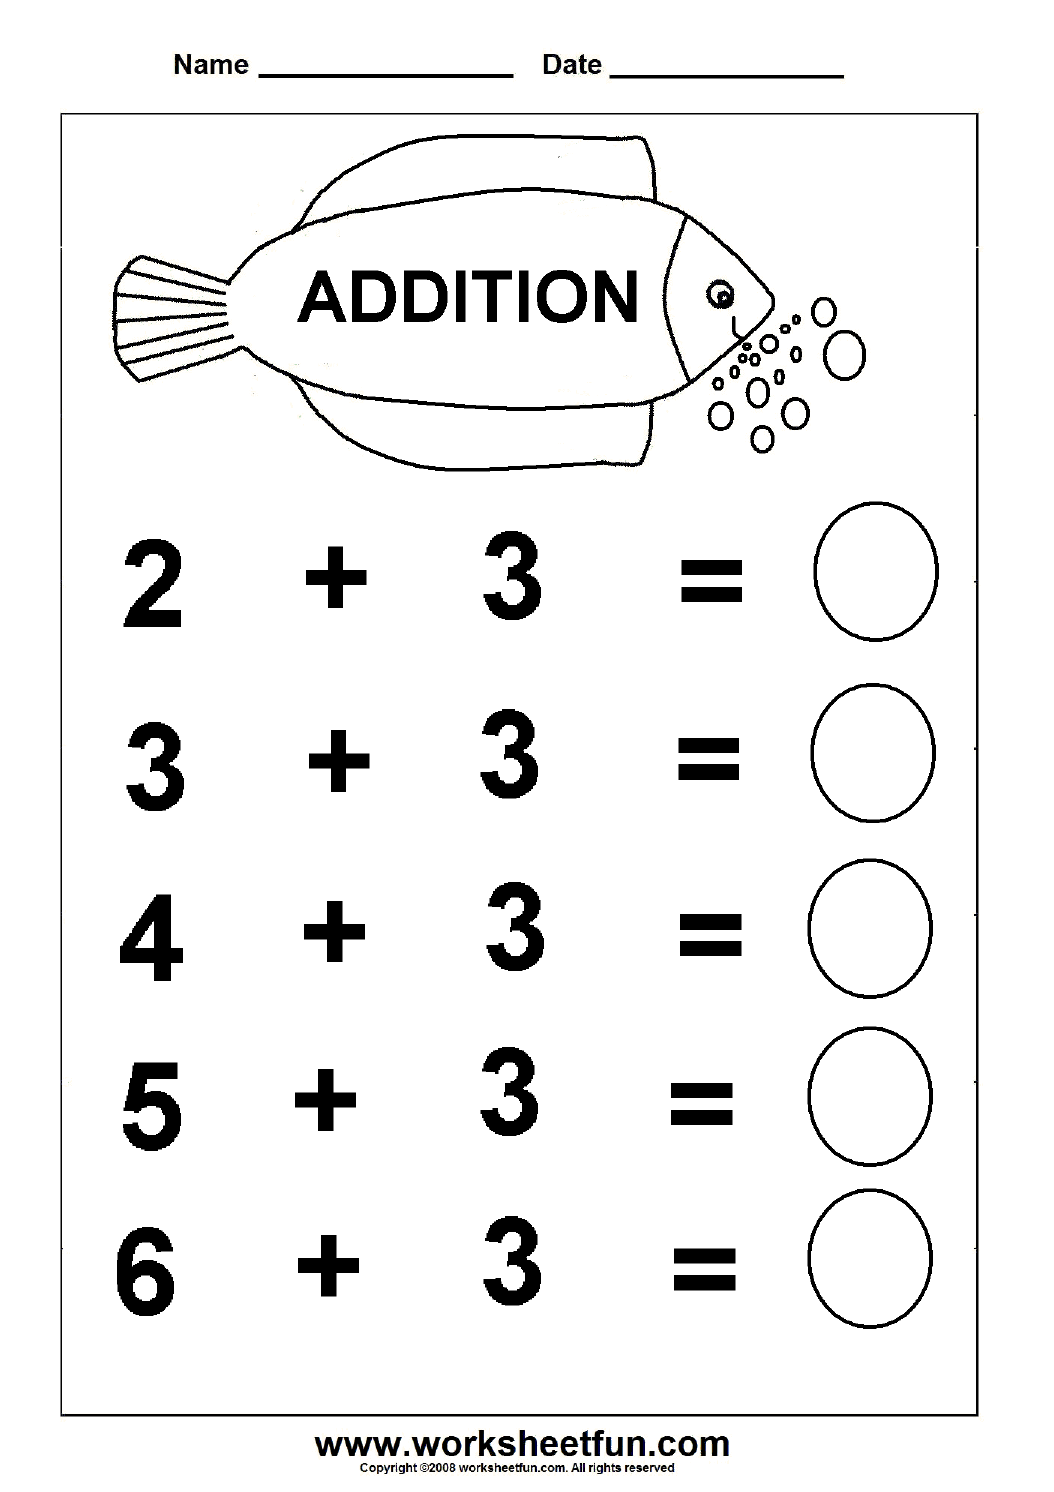 worksheet Adding Worksheet beginner addition 6 kindergarten worksheets free first grade worksheets